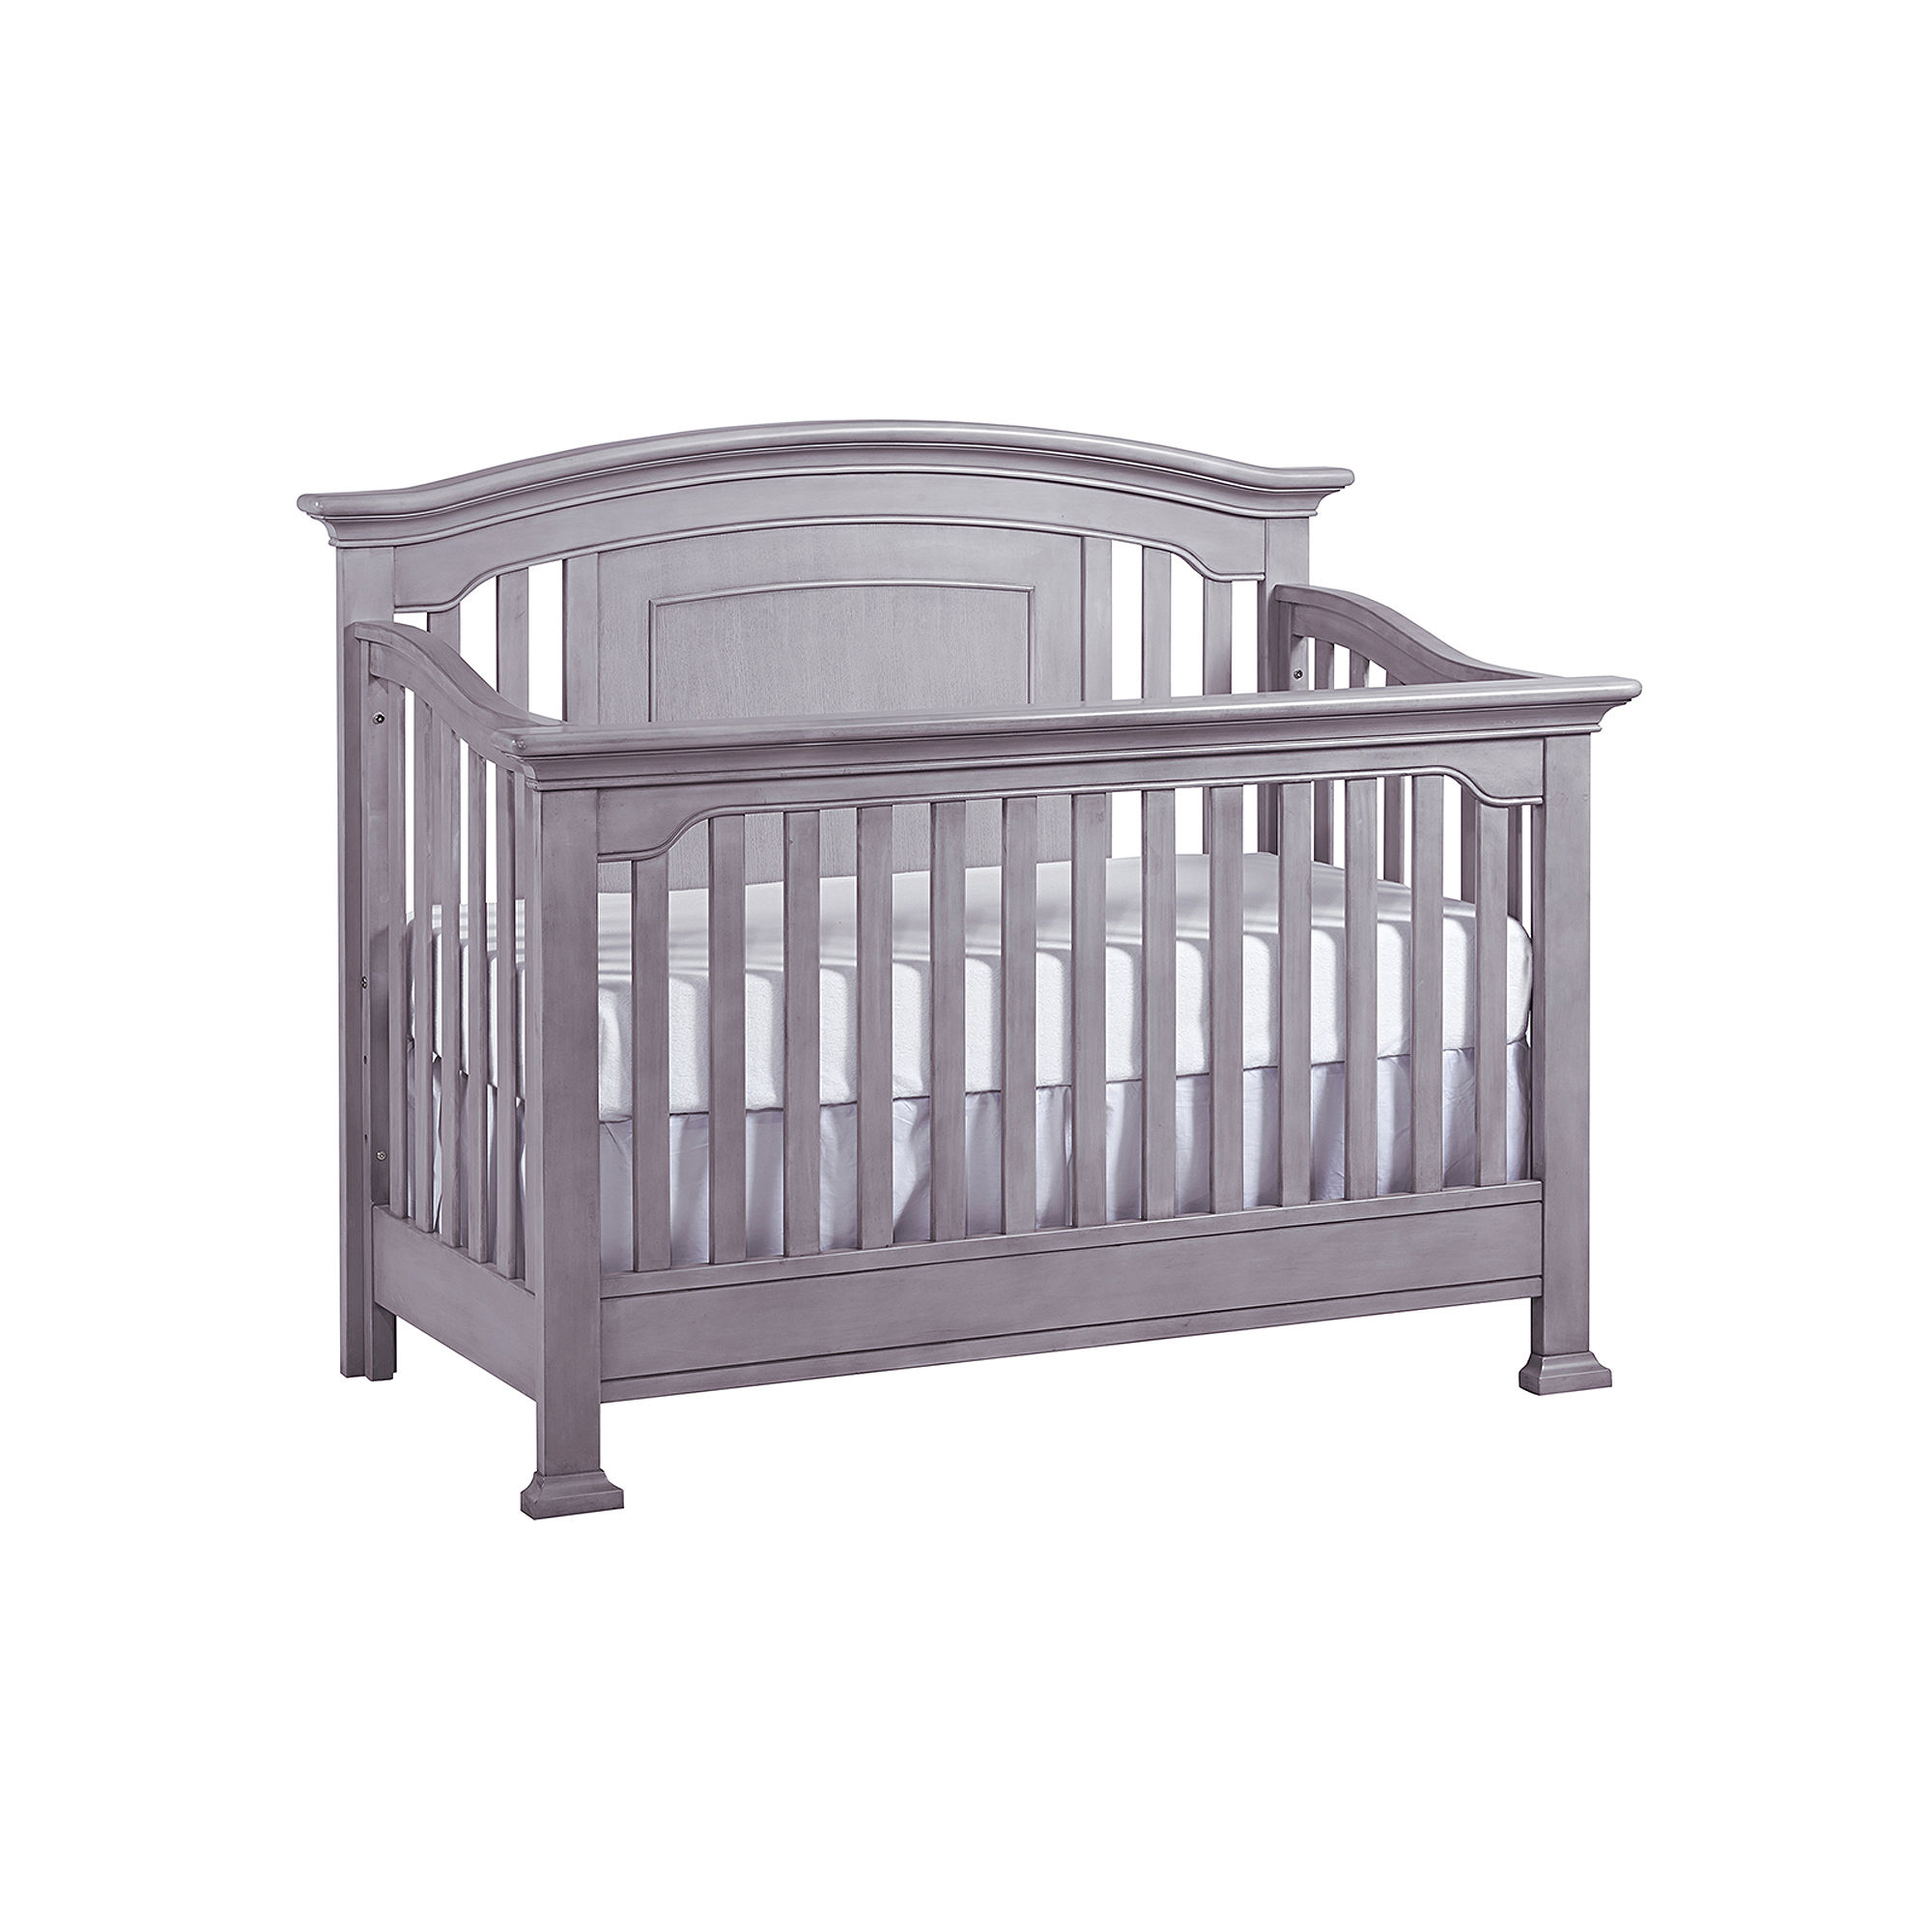 Buy medford convertible crib vintage gray now for Best value baby crib